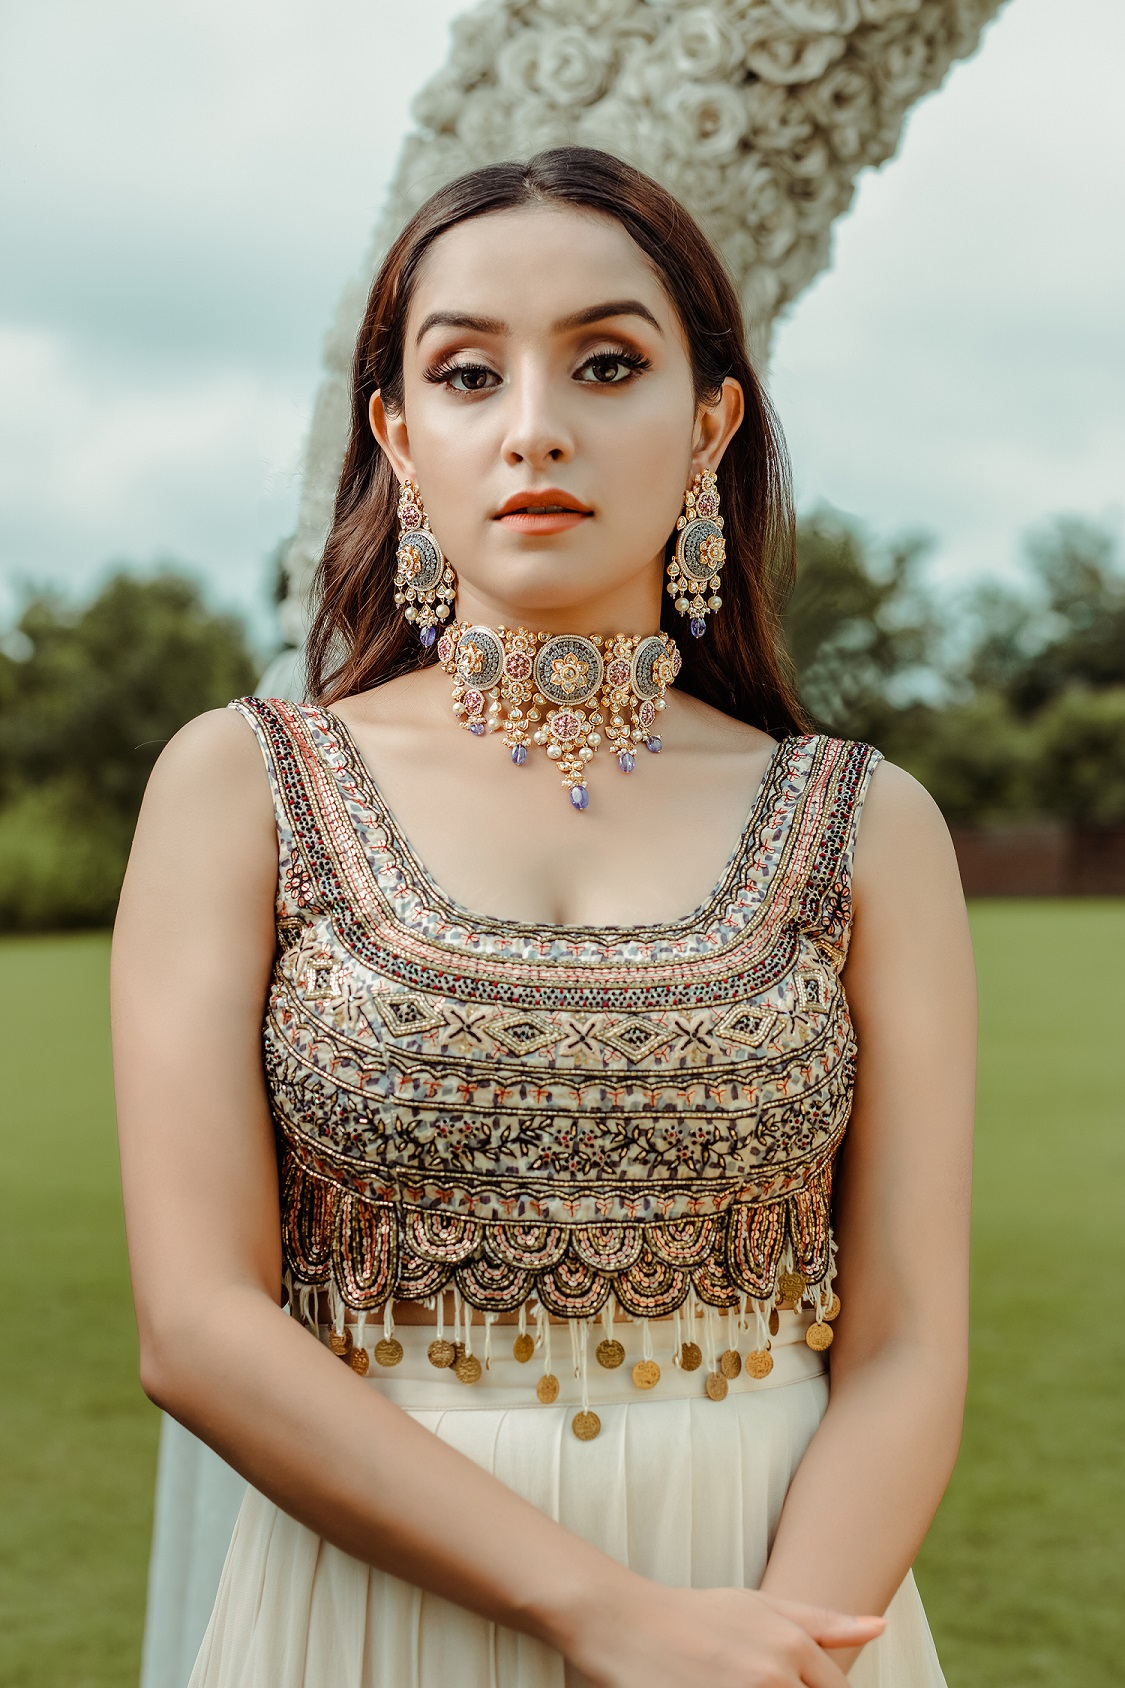 Ciceroni – bridal jewellery – Indian bridal jewellery – pooja diamonds – pooja diamonds Mumbai –pooja diamonds Ahmedabad – Indian wedding jewellery –  Weddings in India – trousseau – bridal wear